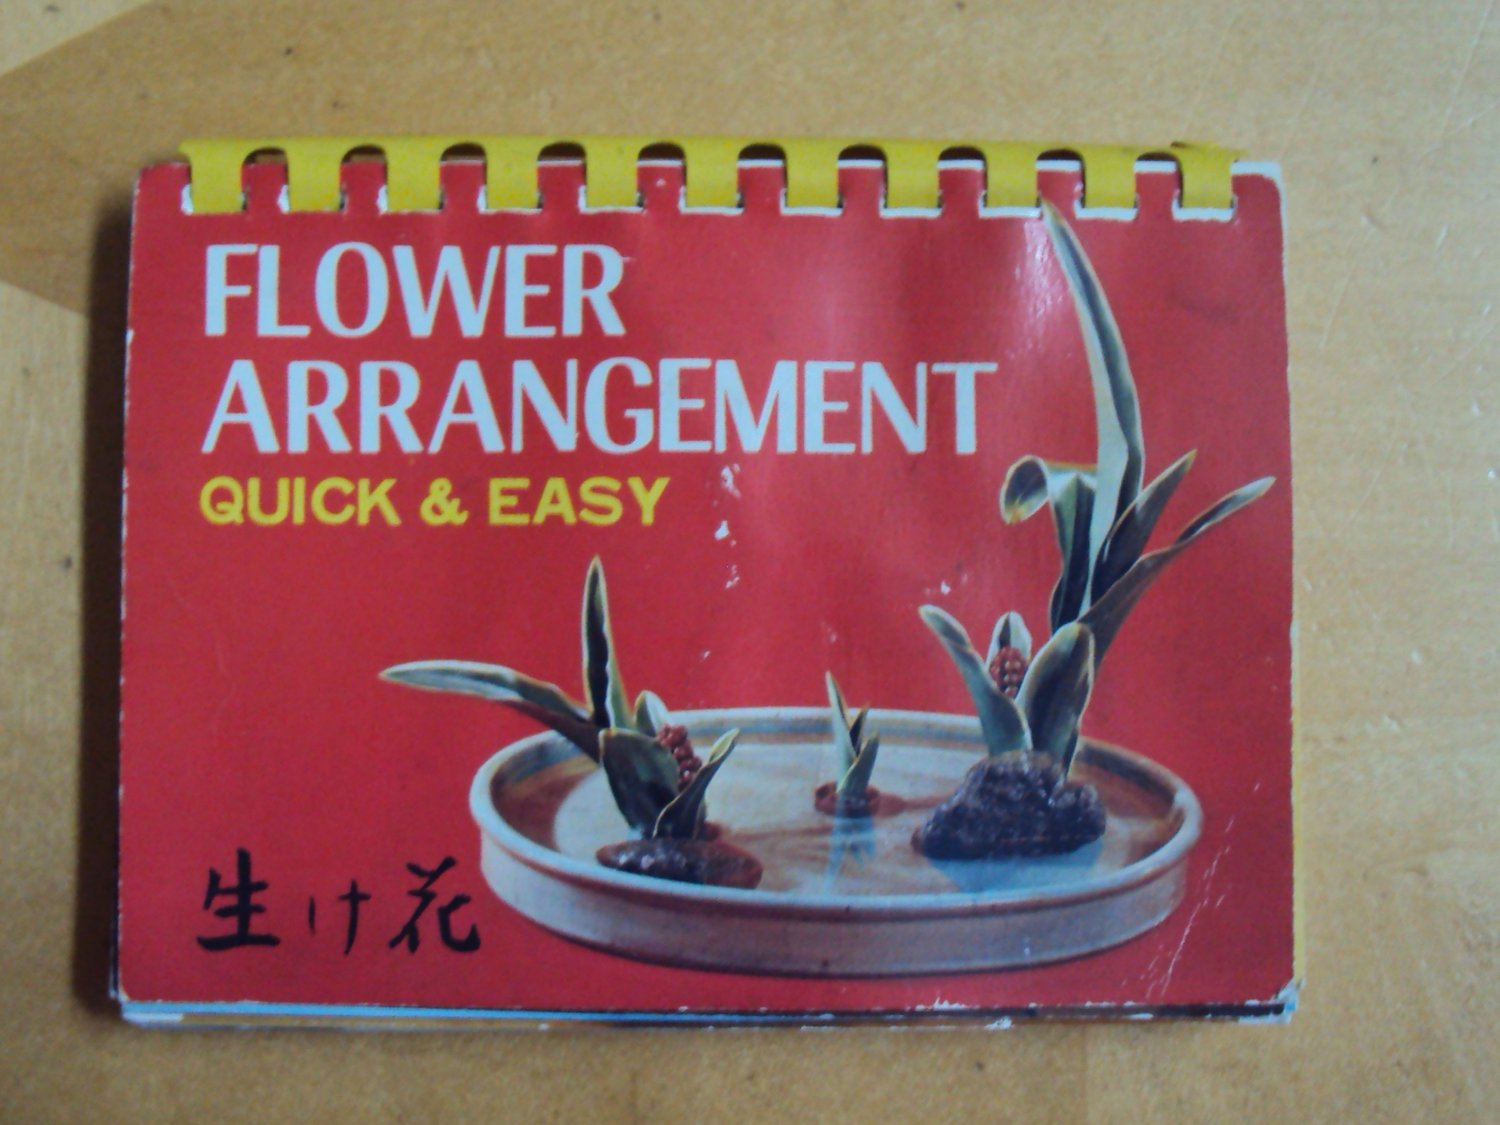 Flower Arrangement- Quick and Easy, by Shufunotomo Co., Ltd., Tokyo, Japan 1985